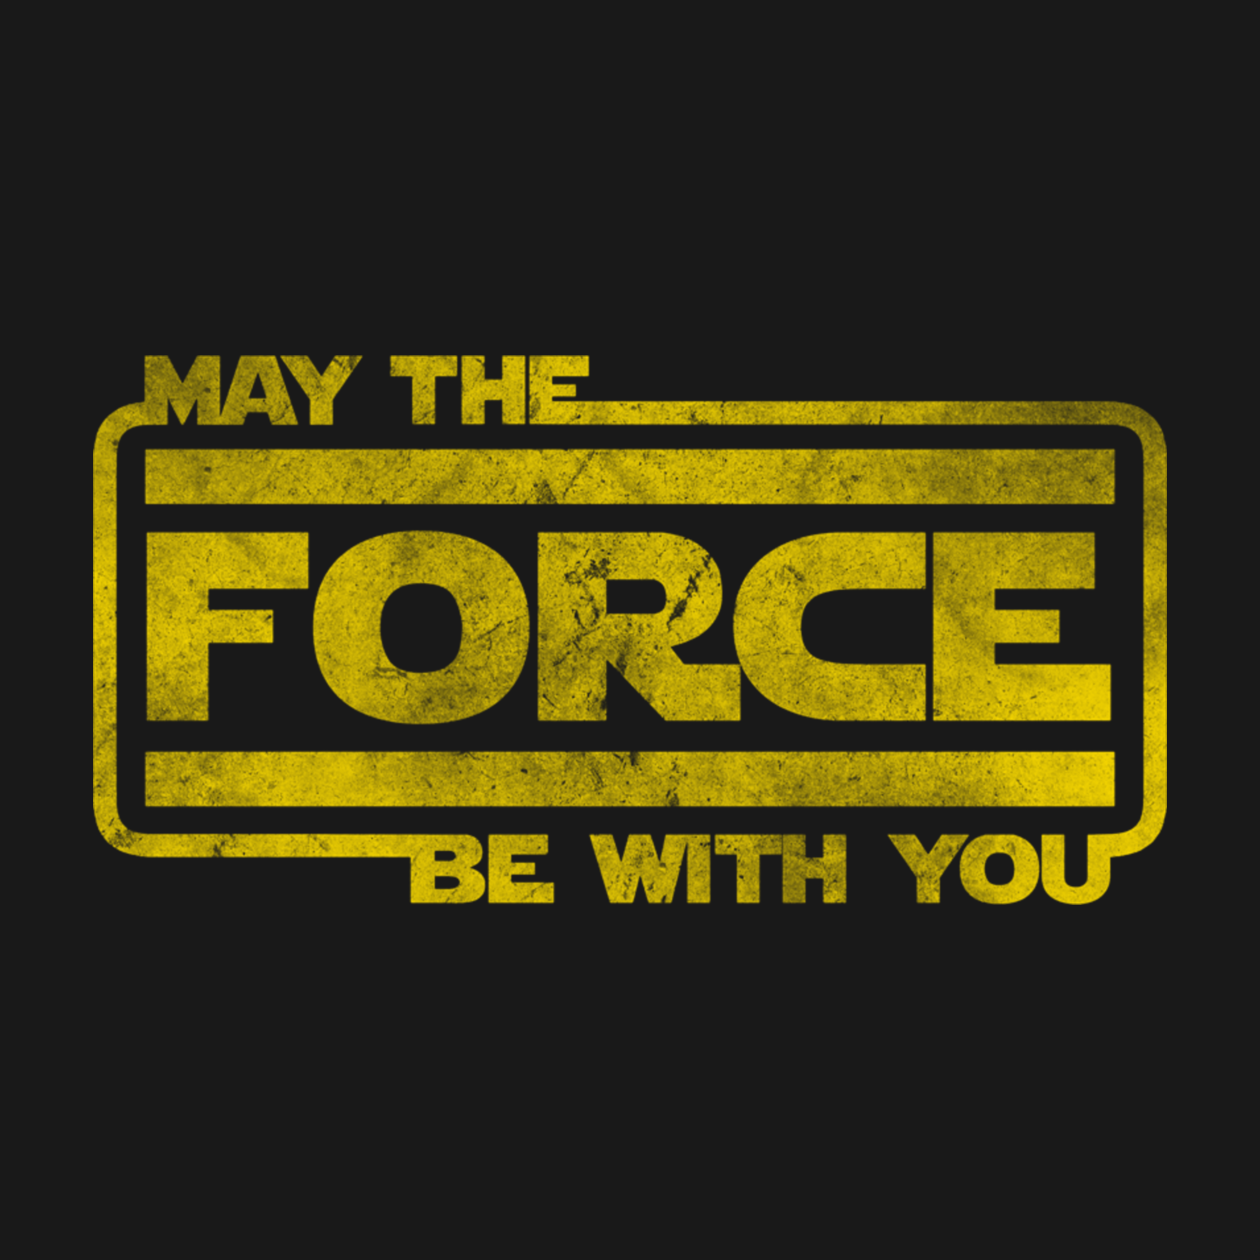 With force may the you be